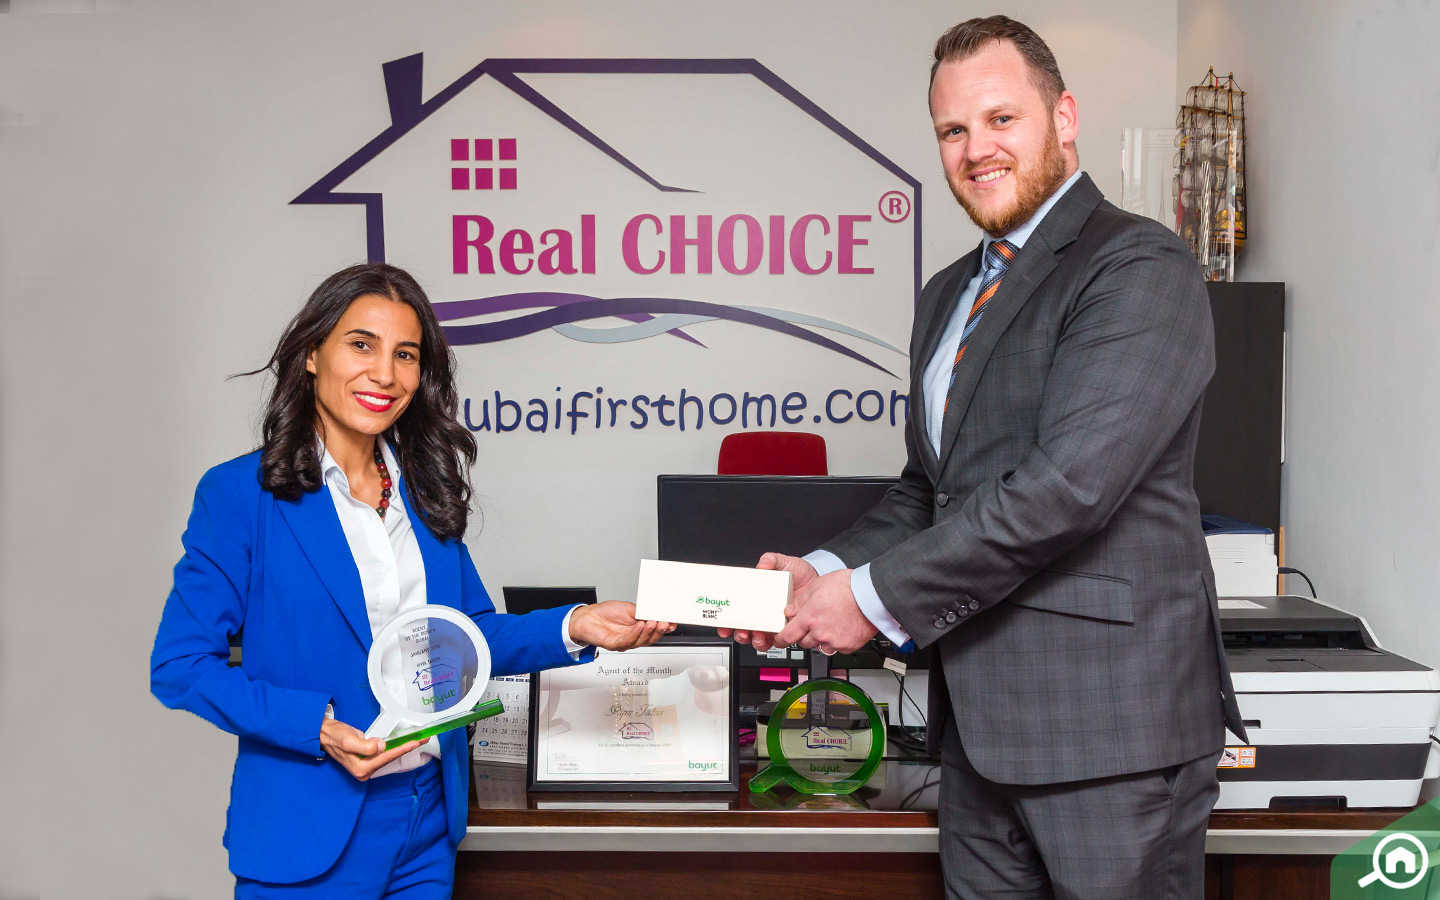 Rym Taher - Bayut Agent of the month for Jan 2019